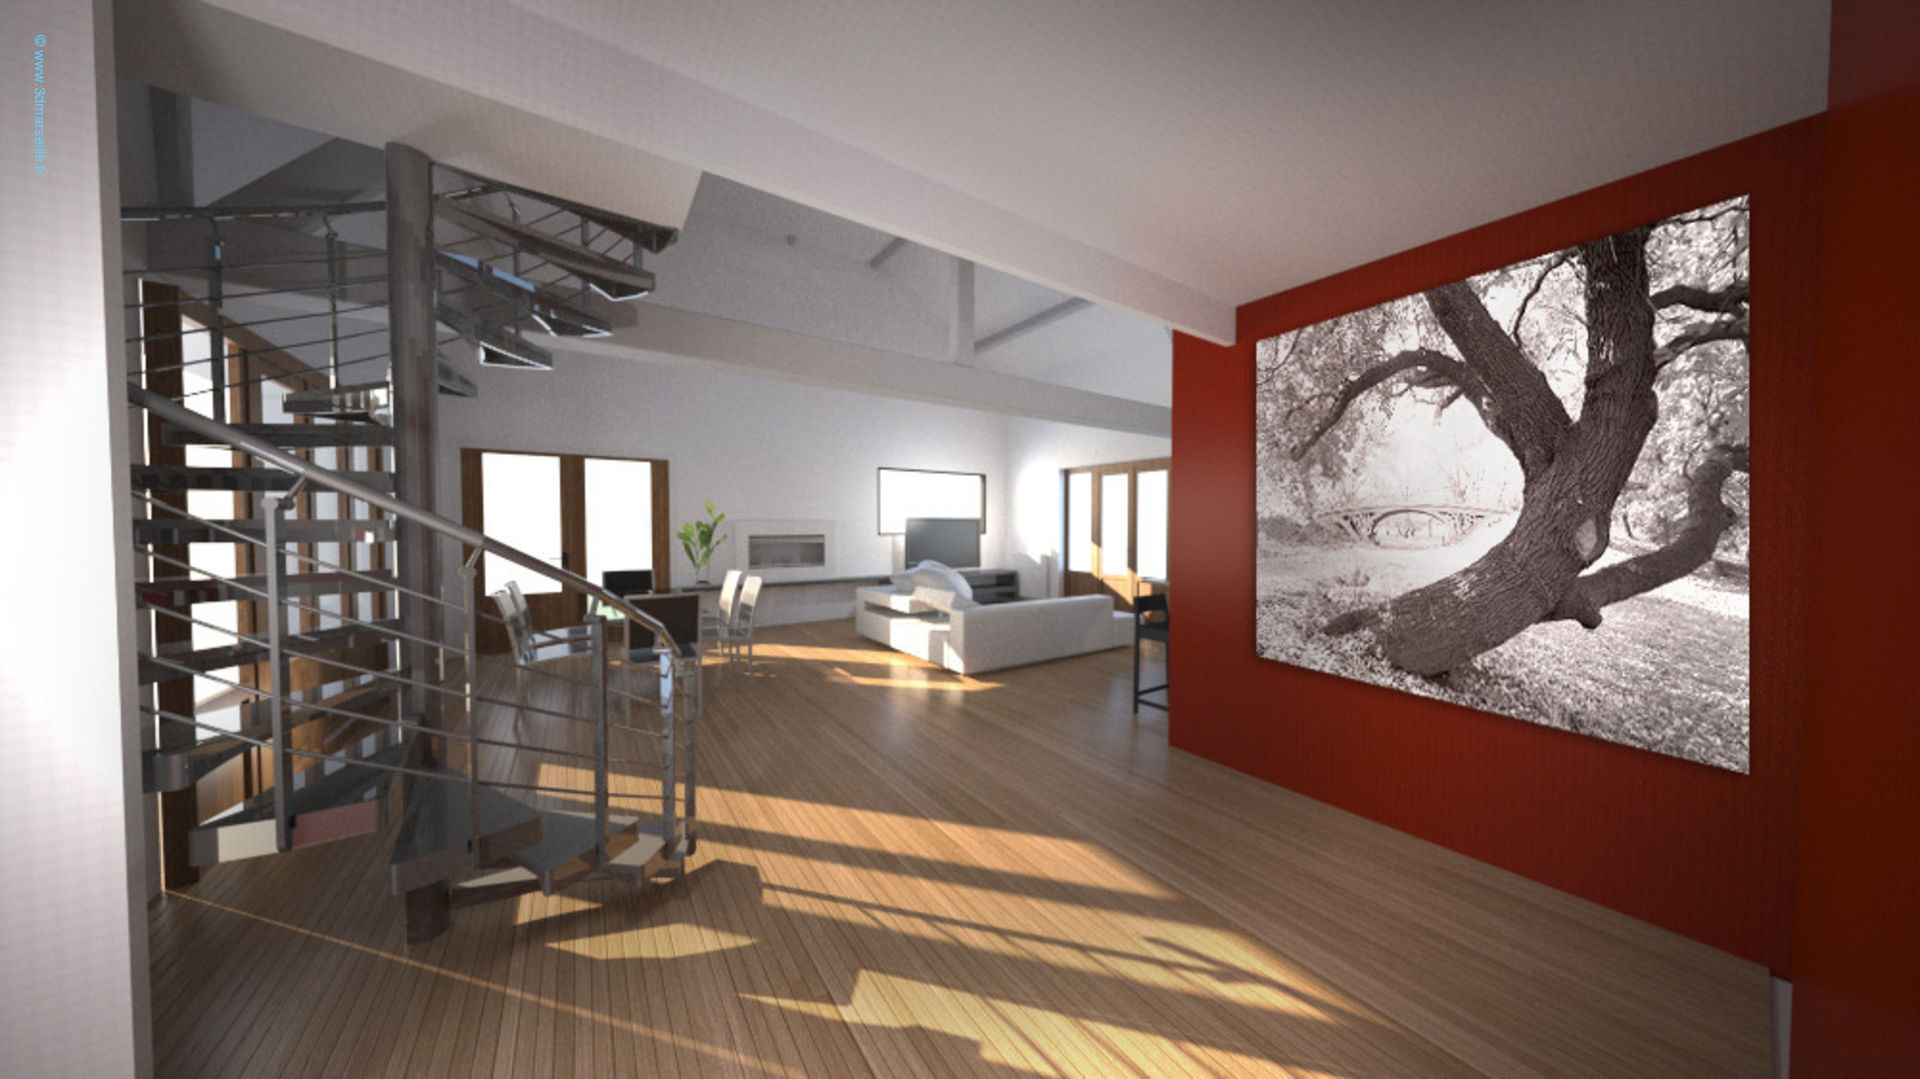 Projet d am nagement int rieur maison individuelle 3d for Design d interieur